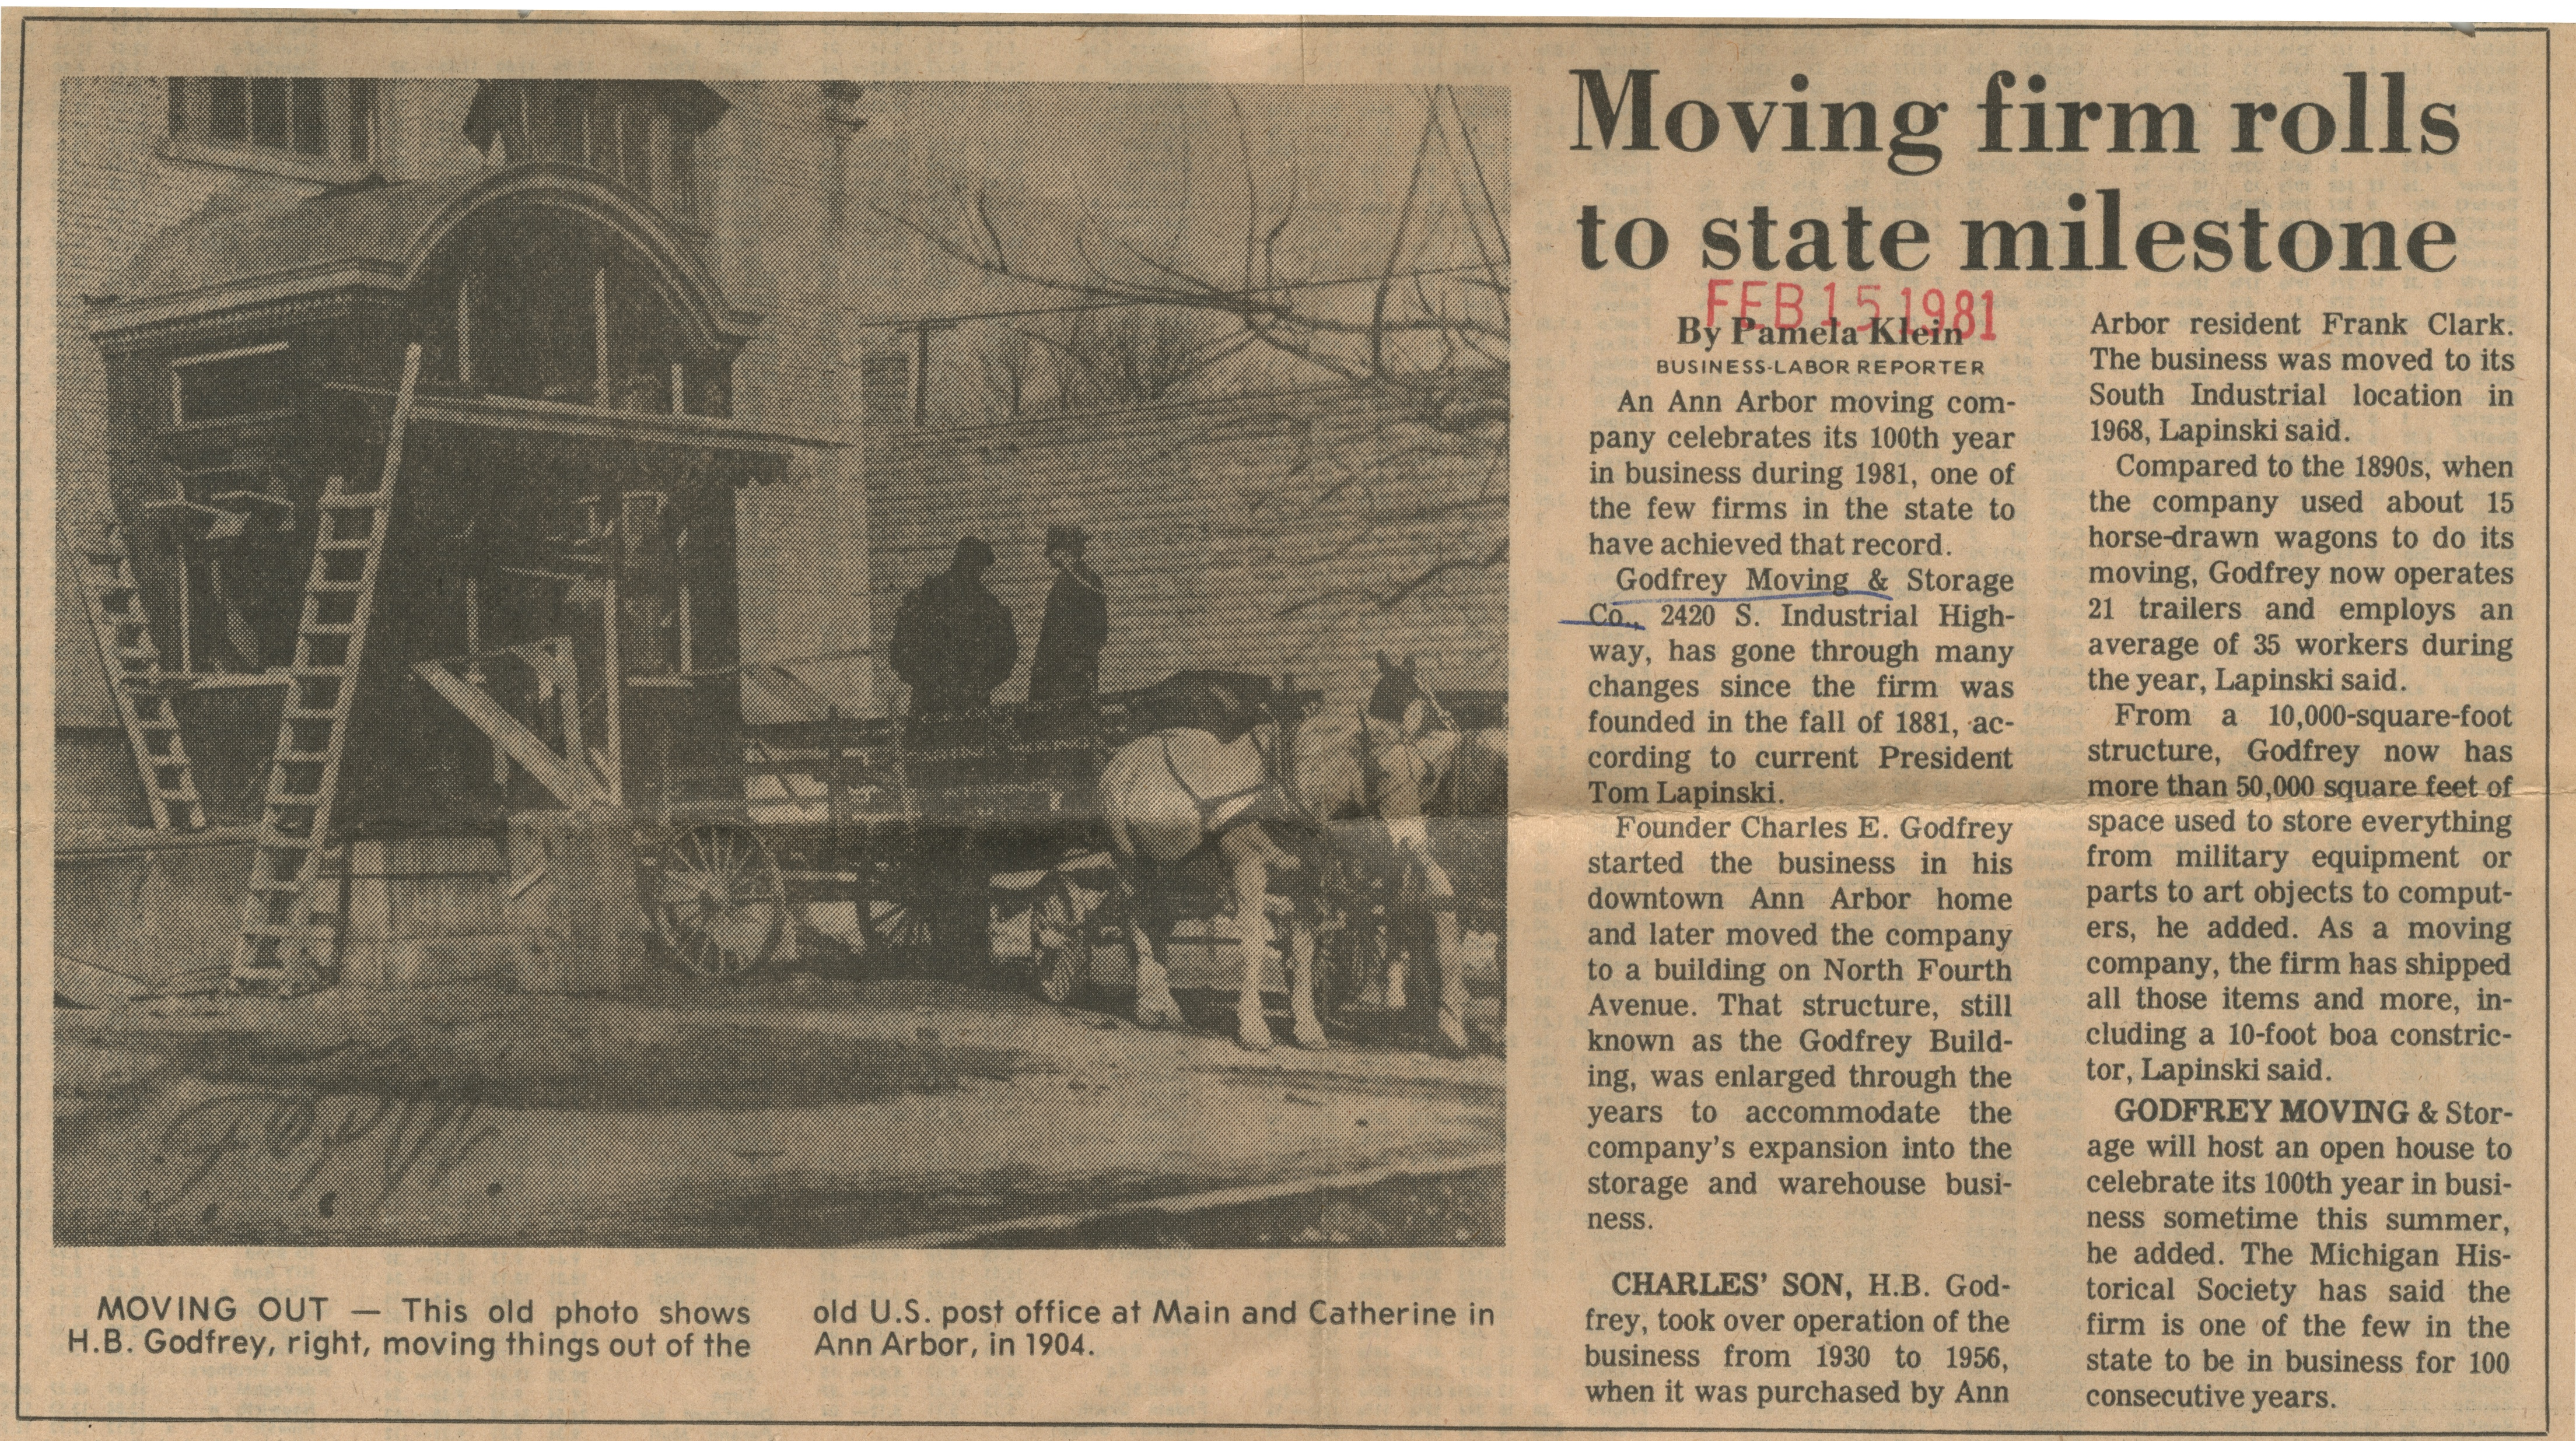 Moving Firm Rolls To State Milestone image